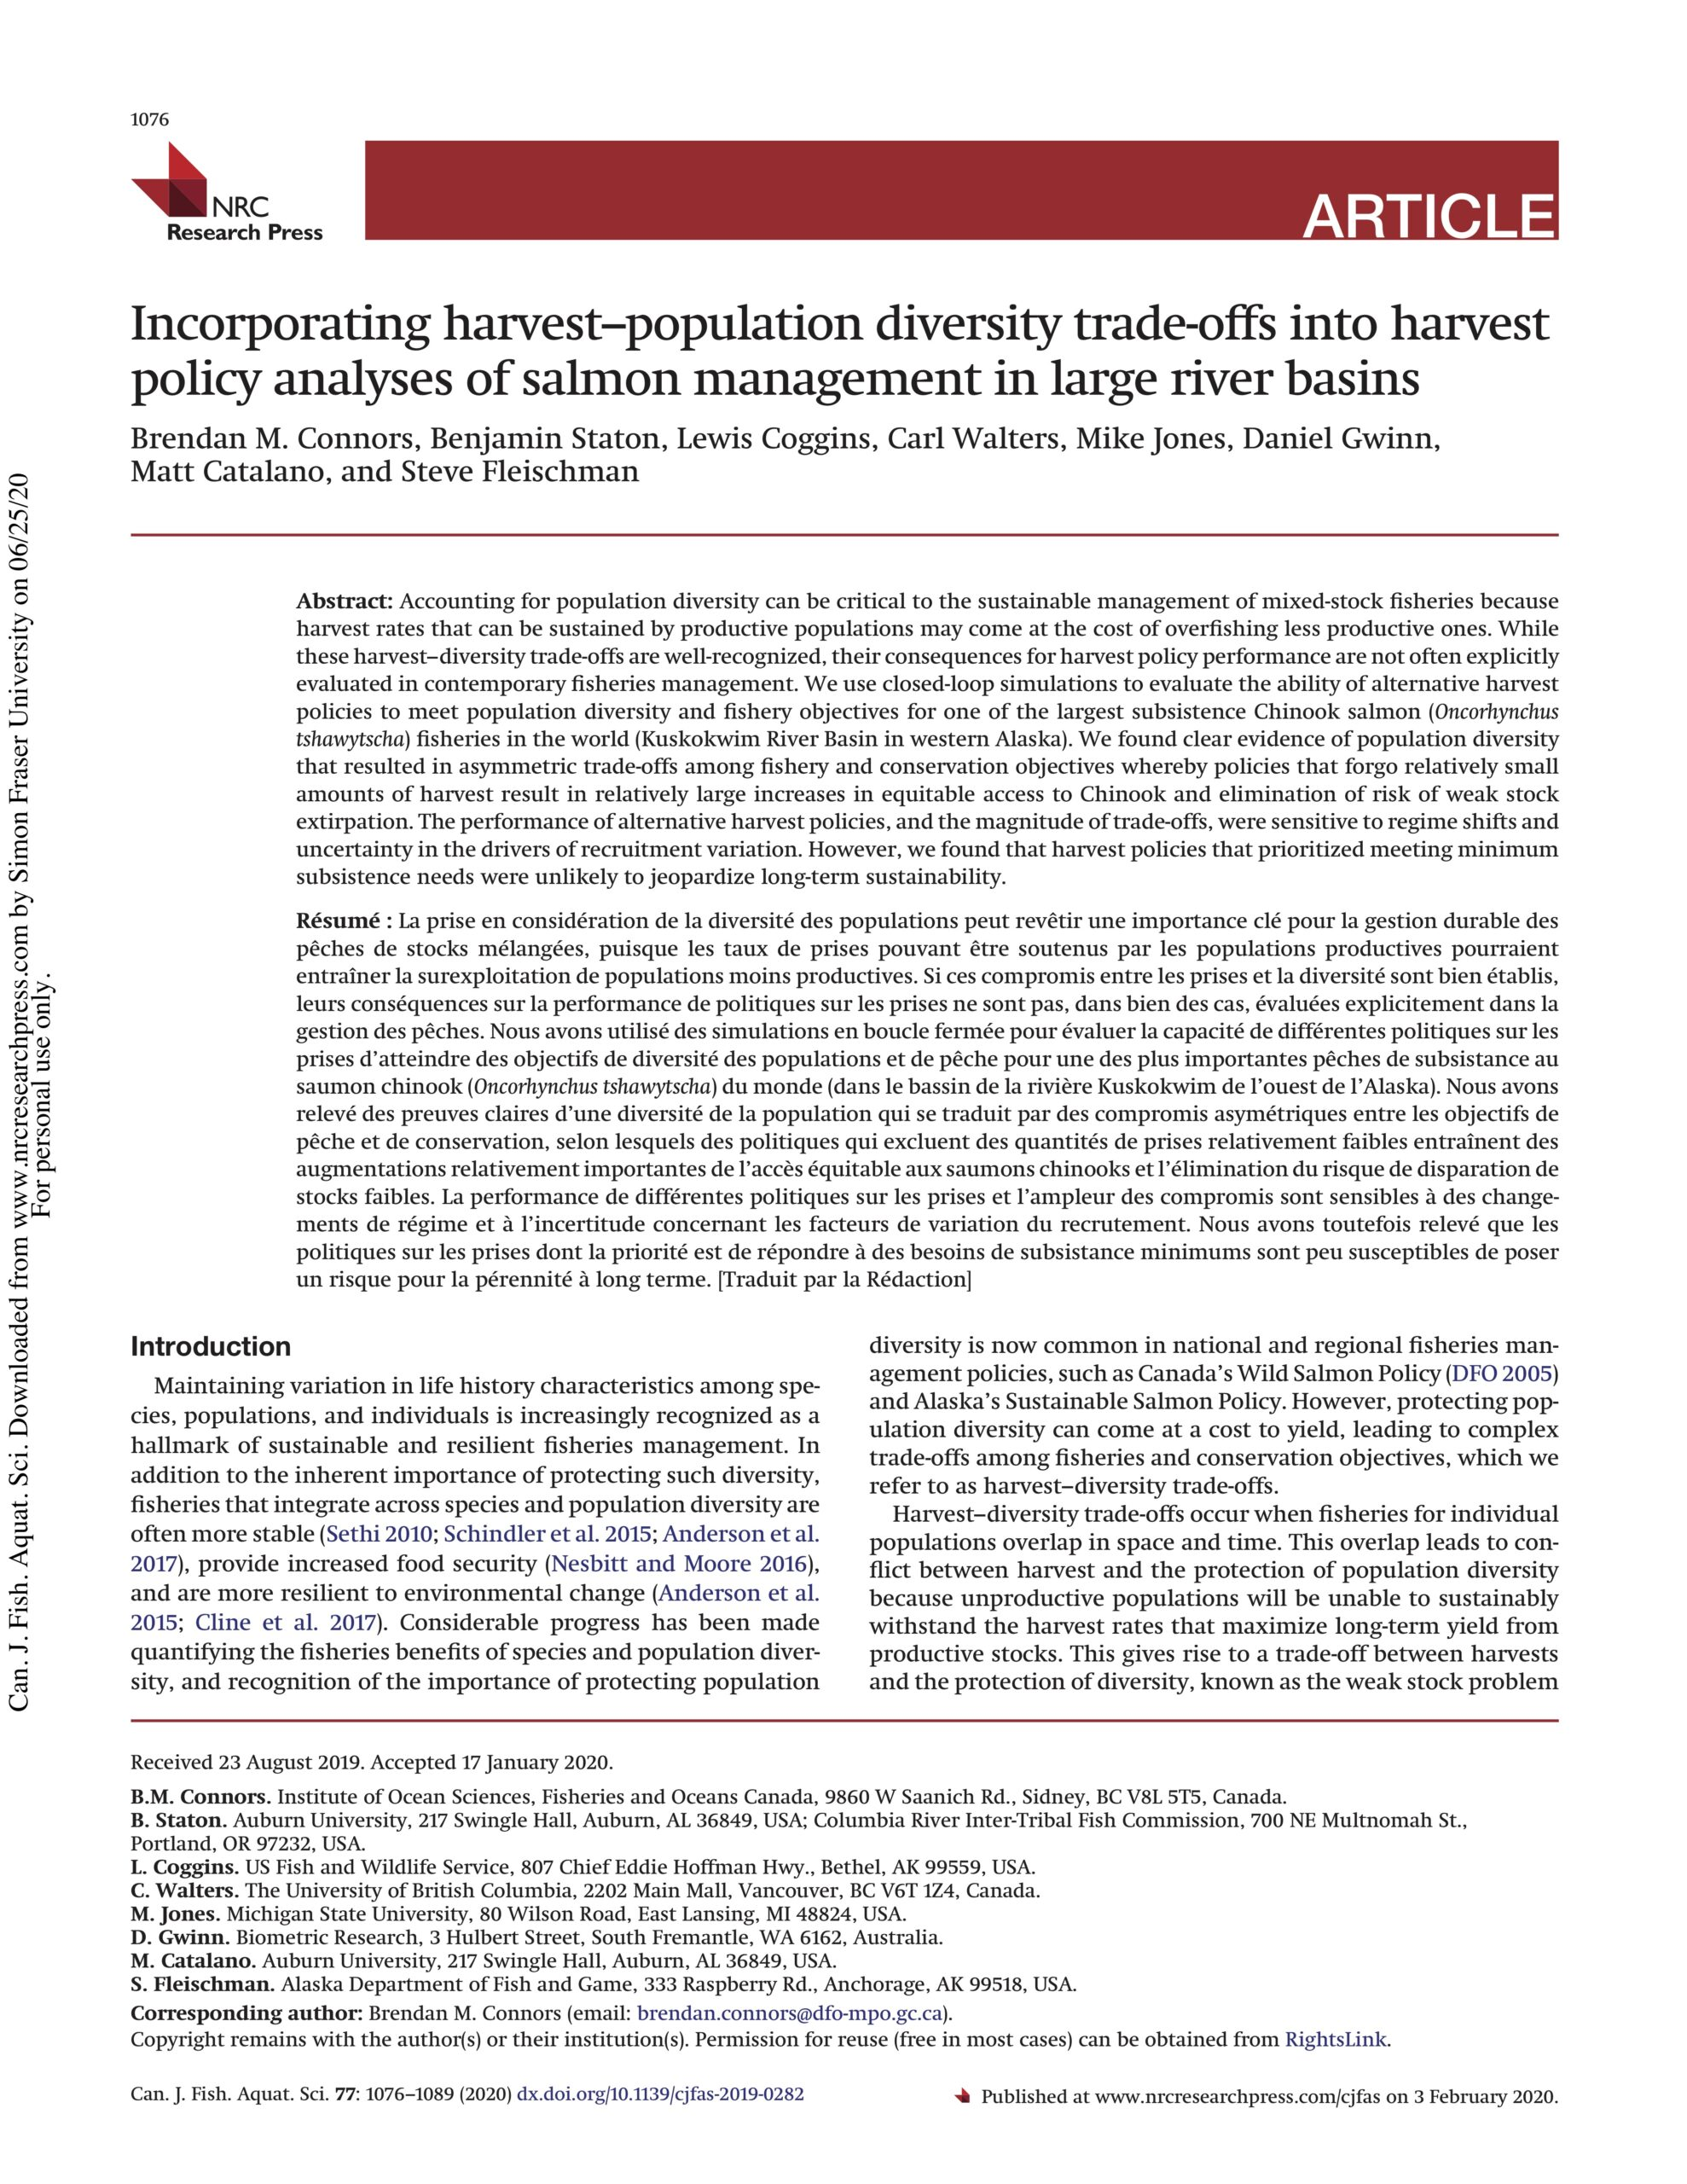 Connors et al. 2020: Incorporating harvest-population diversity trade-offs into harvest policy analyses of salmon management in large river basins